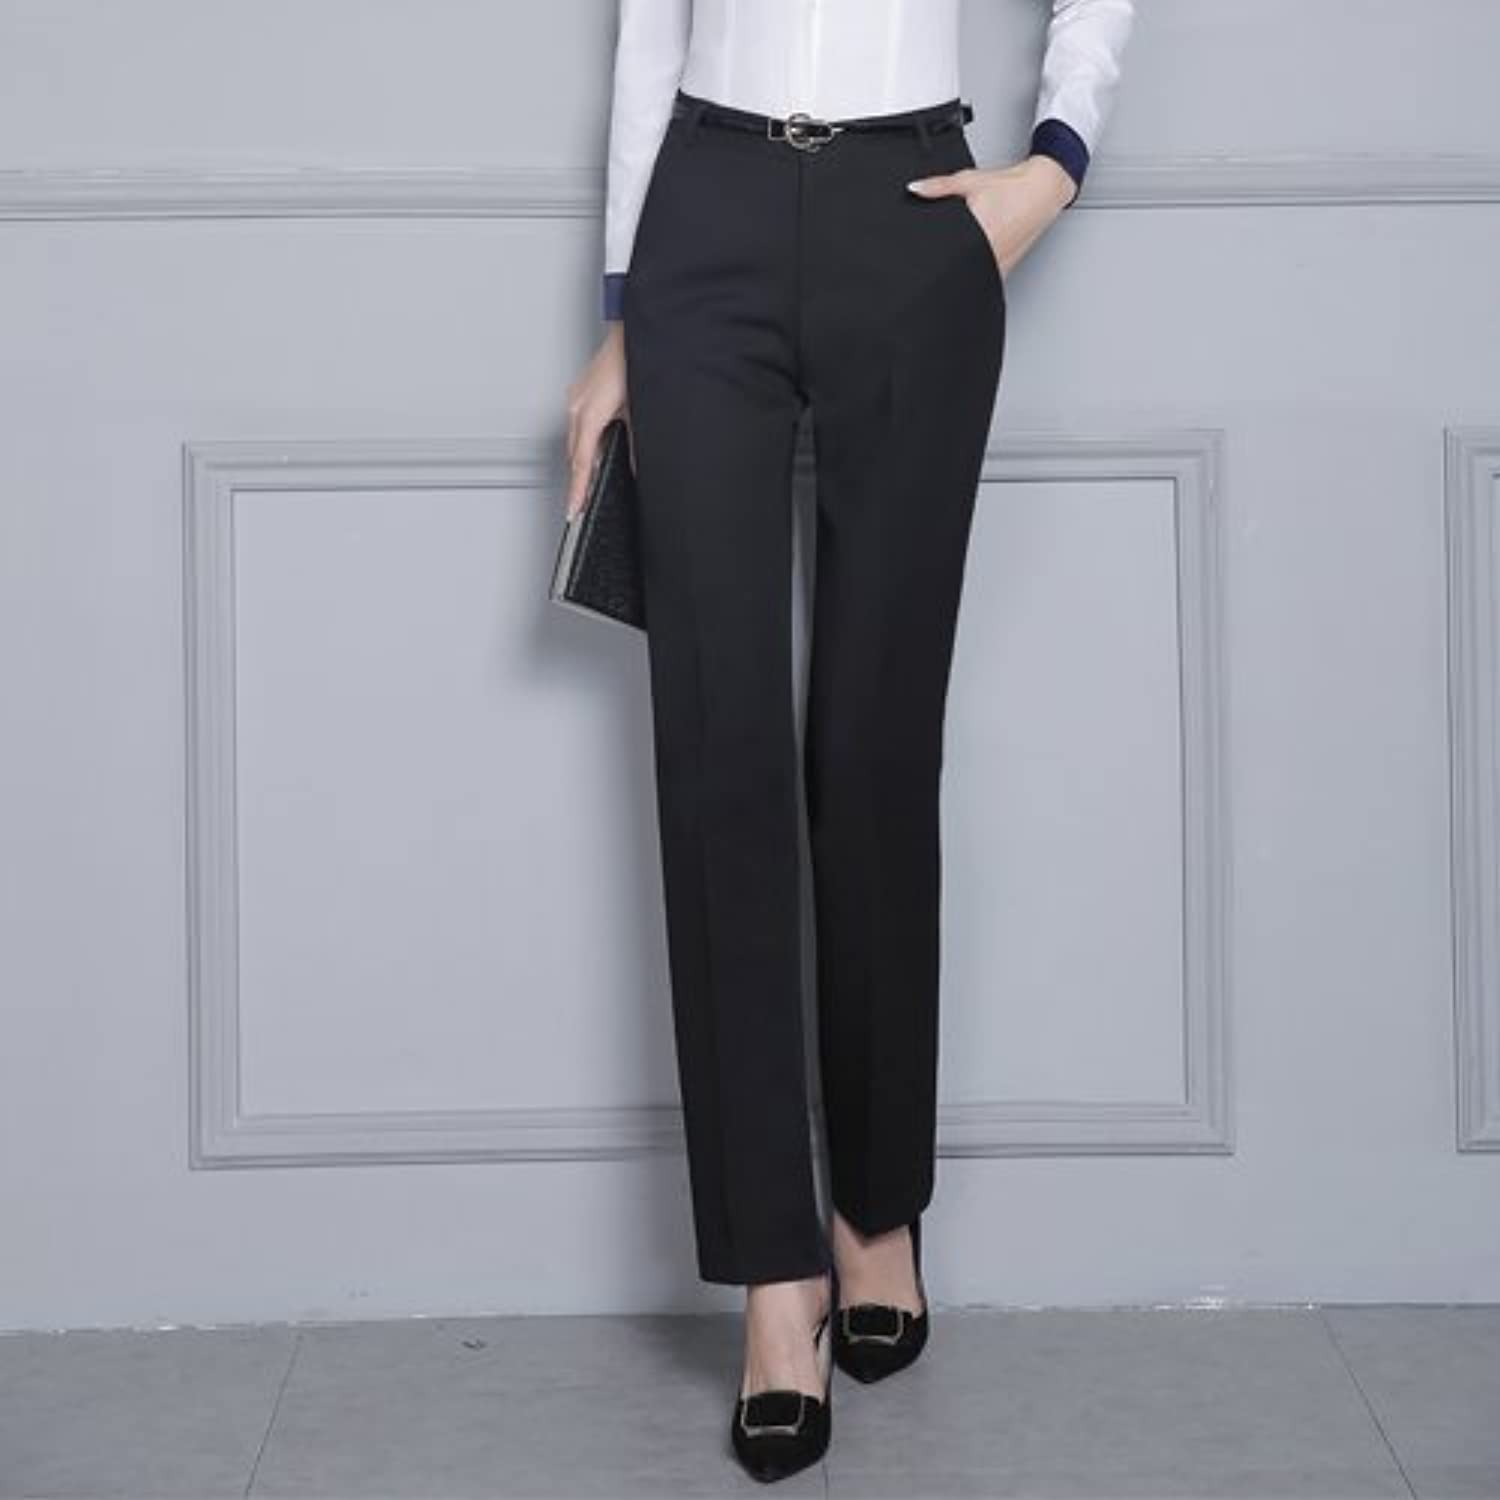 WYMBS Career Women's Clothes Career Women Set kit Skirt Suits Set is Loaded Workwear